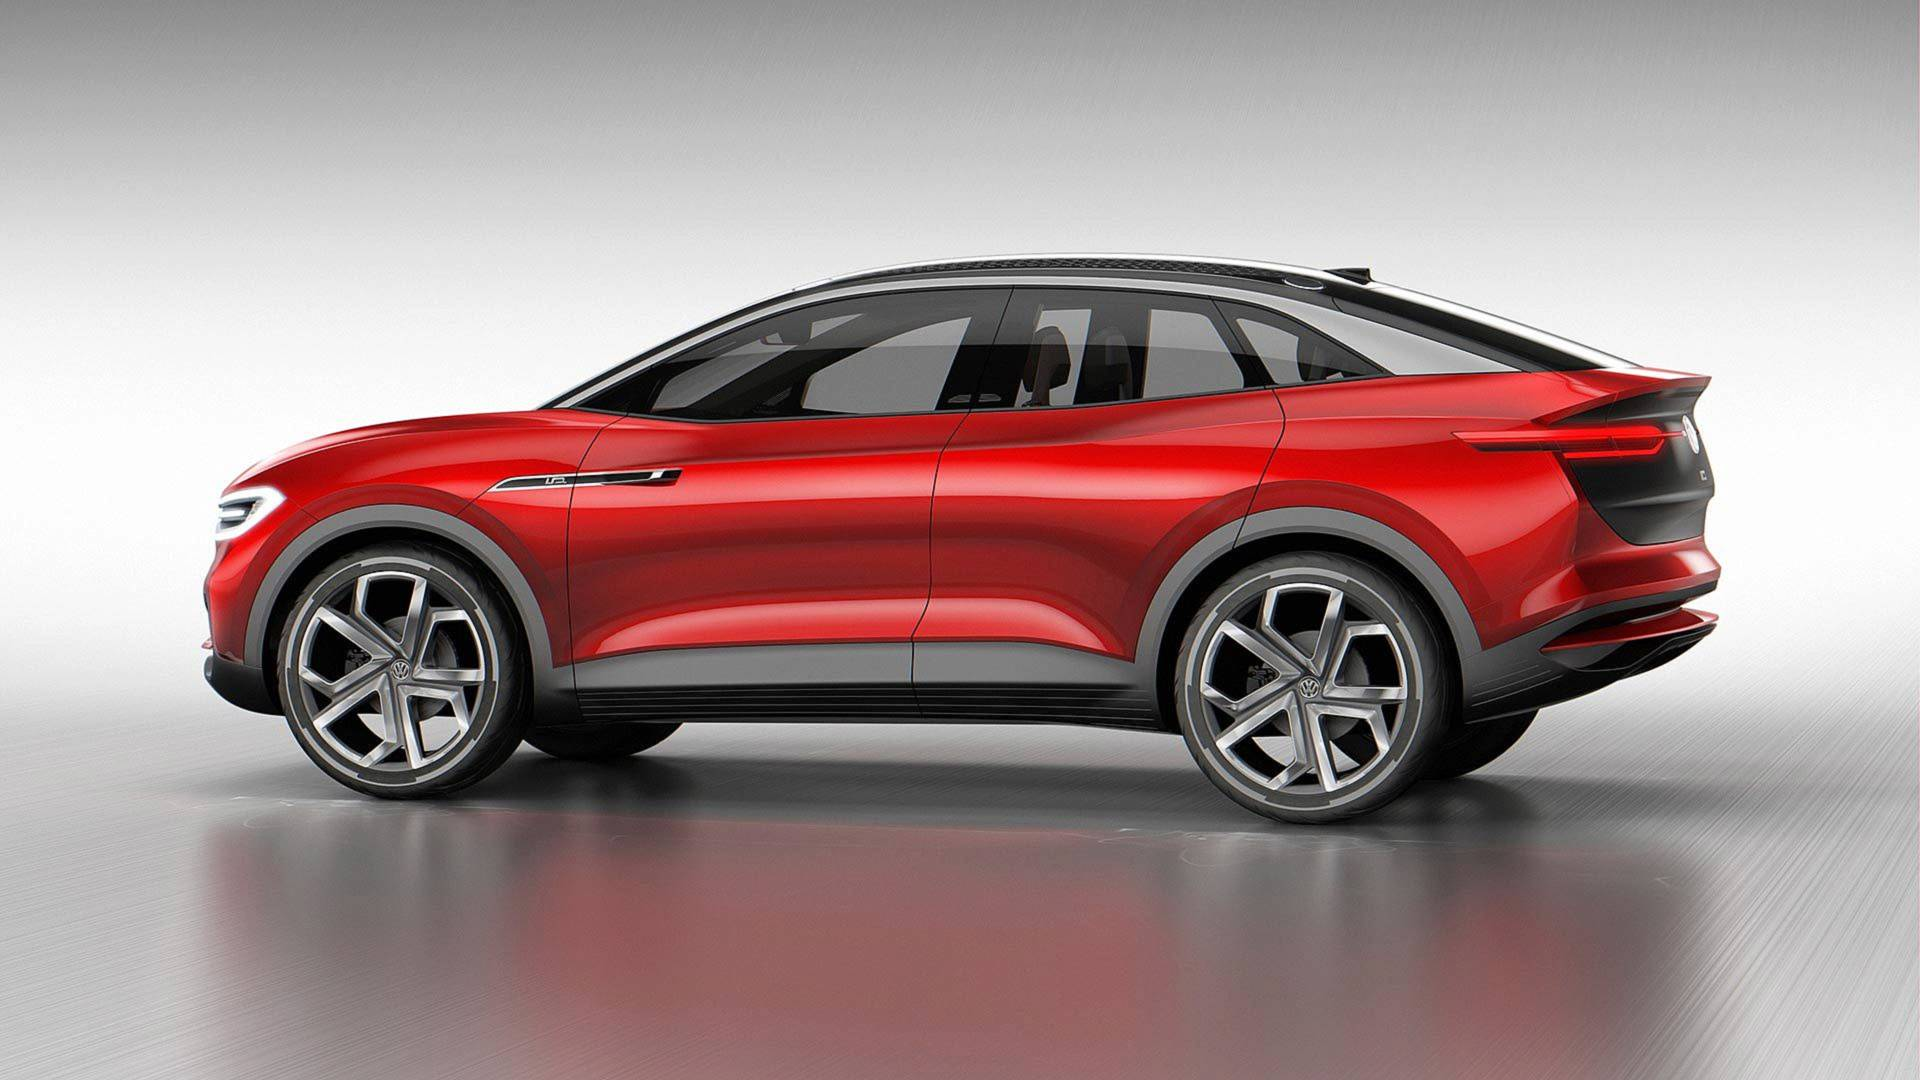 Best Suv 2020 Usa 2020 New Models Guide: 30 Cars, Trucks, And SUVs Coming Soon